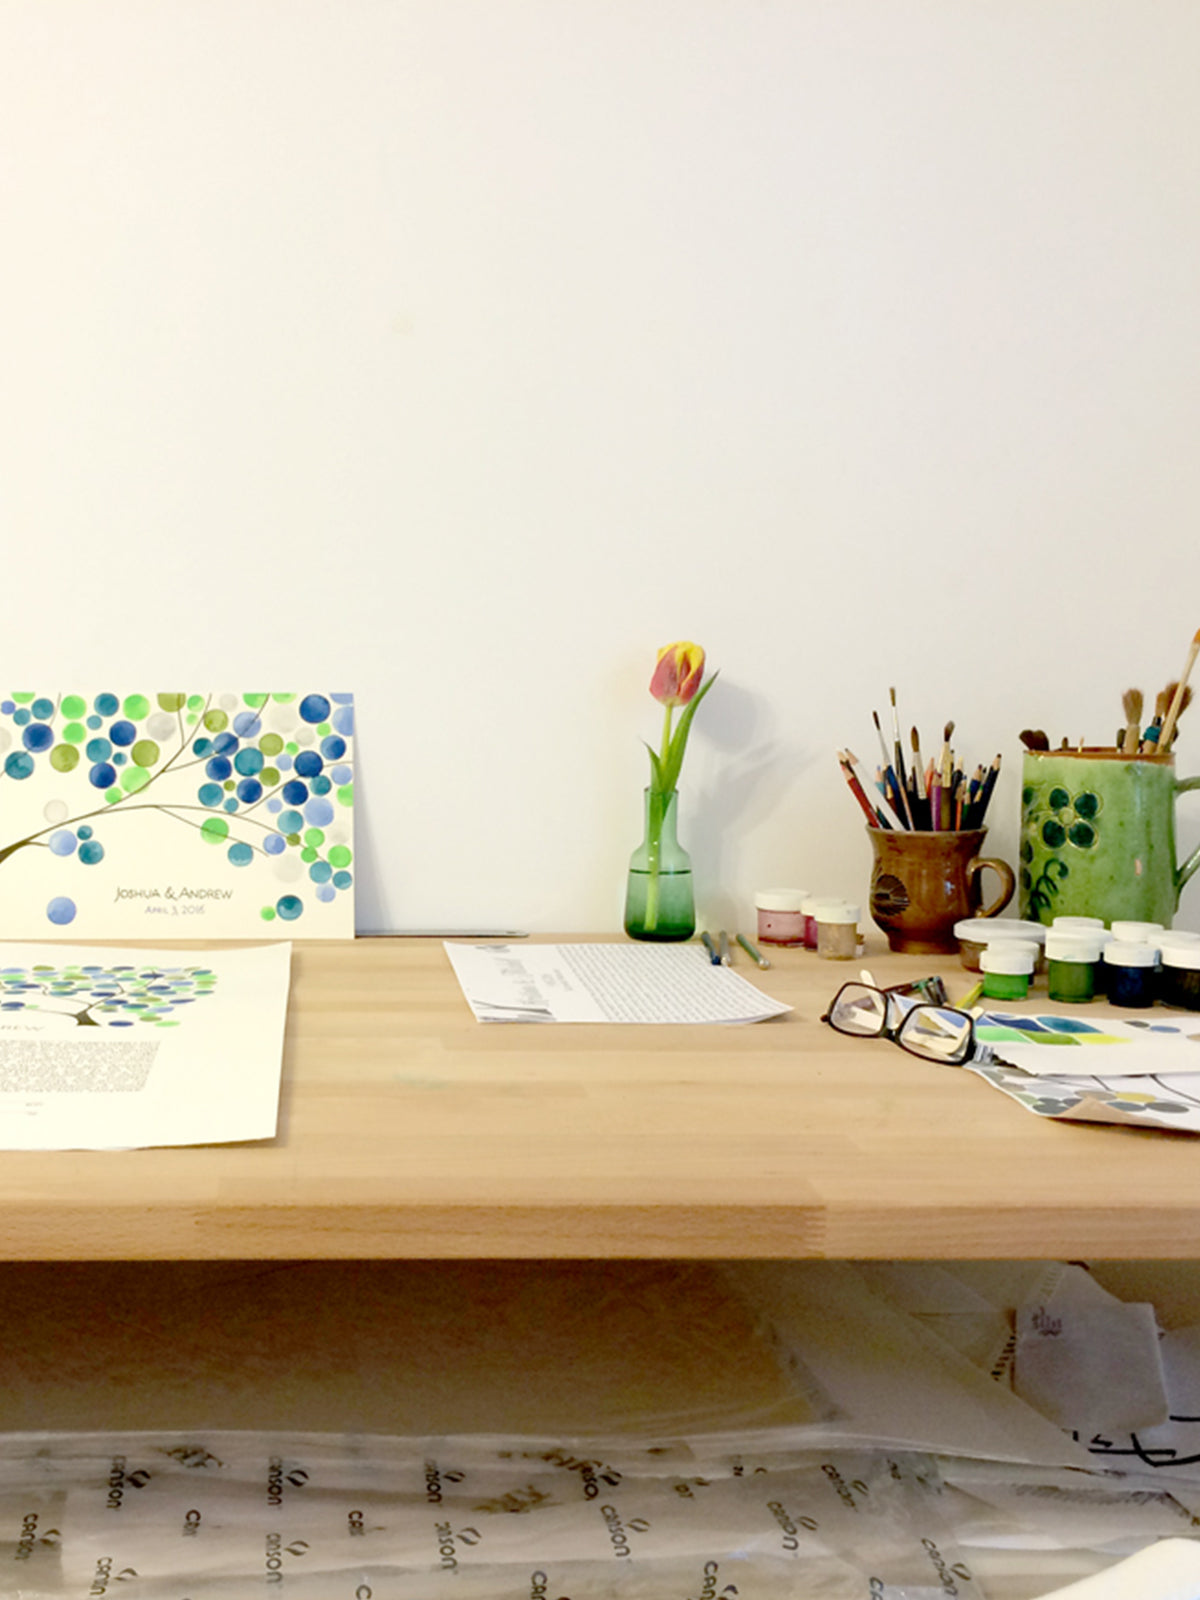 Makings of a matching guest book and ketubah - original greenery in watercolor